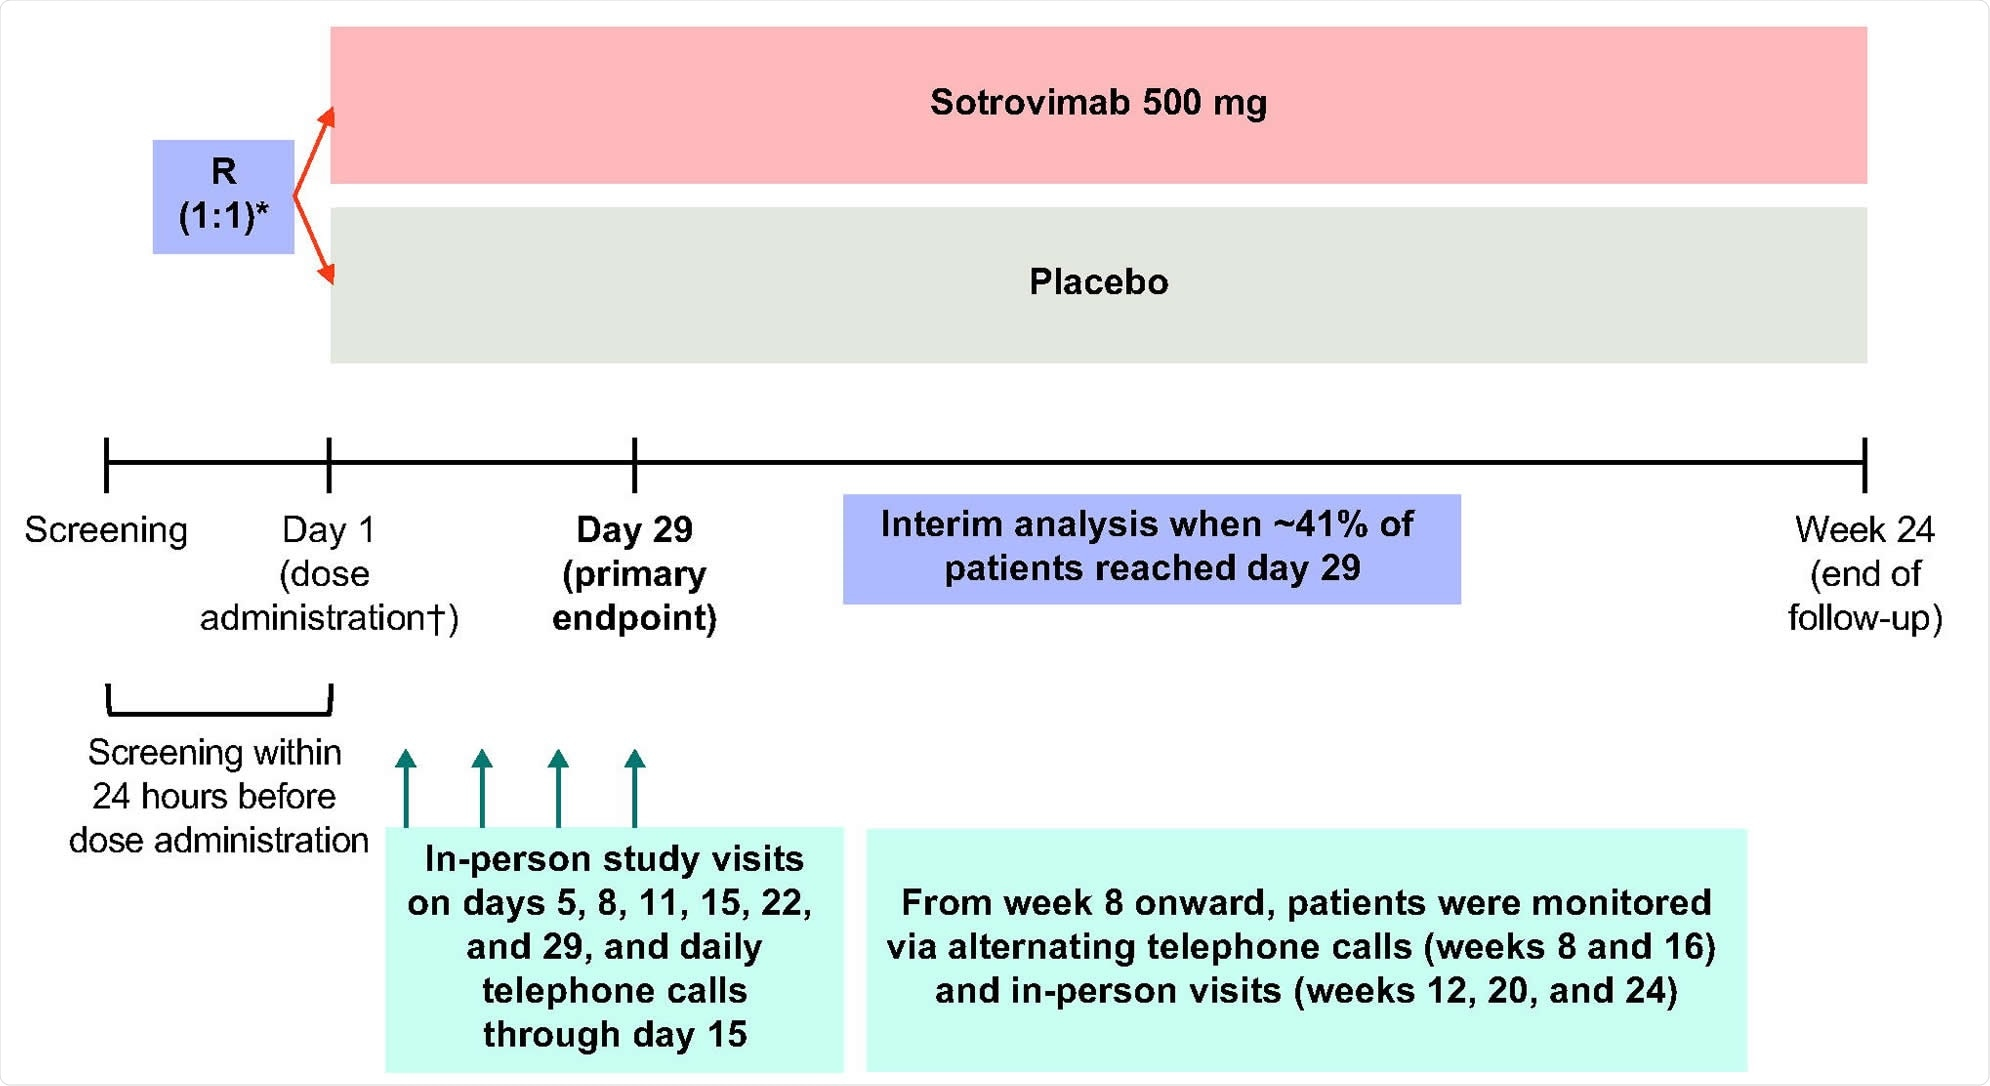 Study design. R denotes randomization. *Patients were stratified by age (≤70 vs. >70 years), symptom duration (≤3 days vs. 4-5 days), and region. †Study pharmacists reconstituted and dispensed all study medications within equal time frames to maintain blinding.